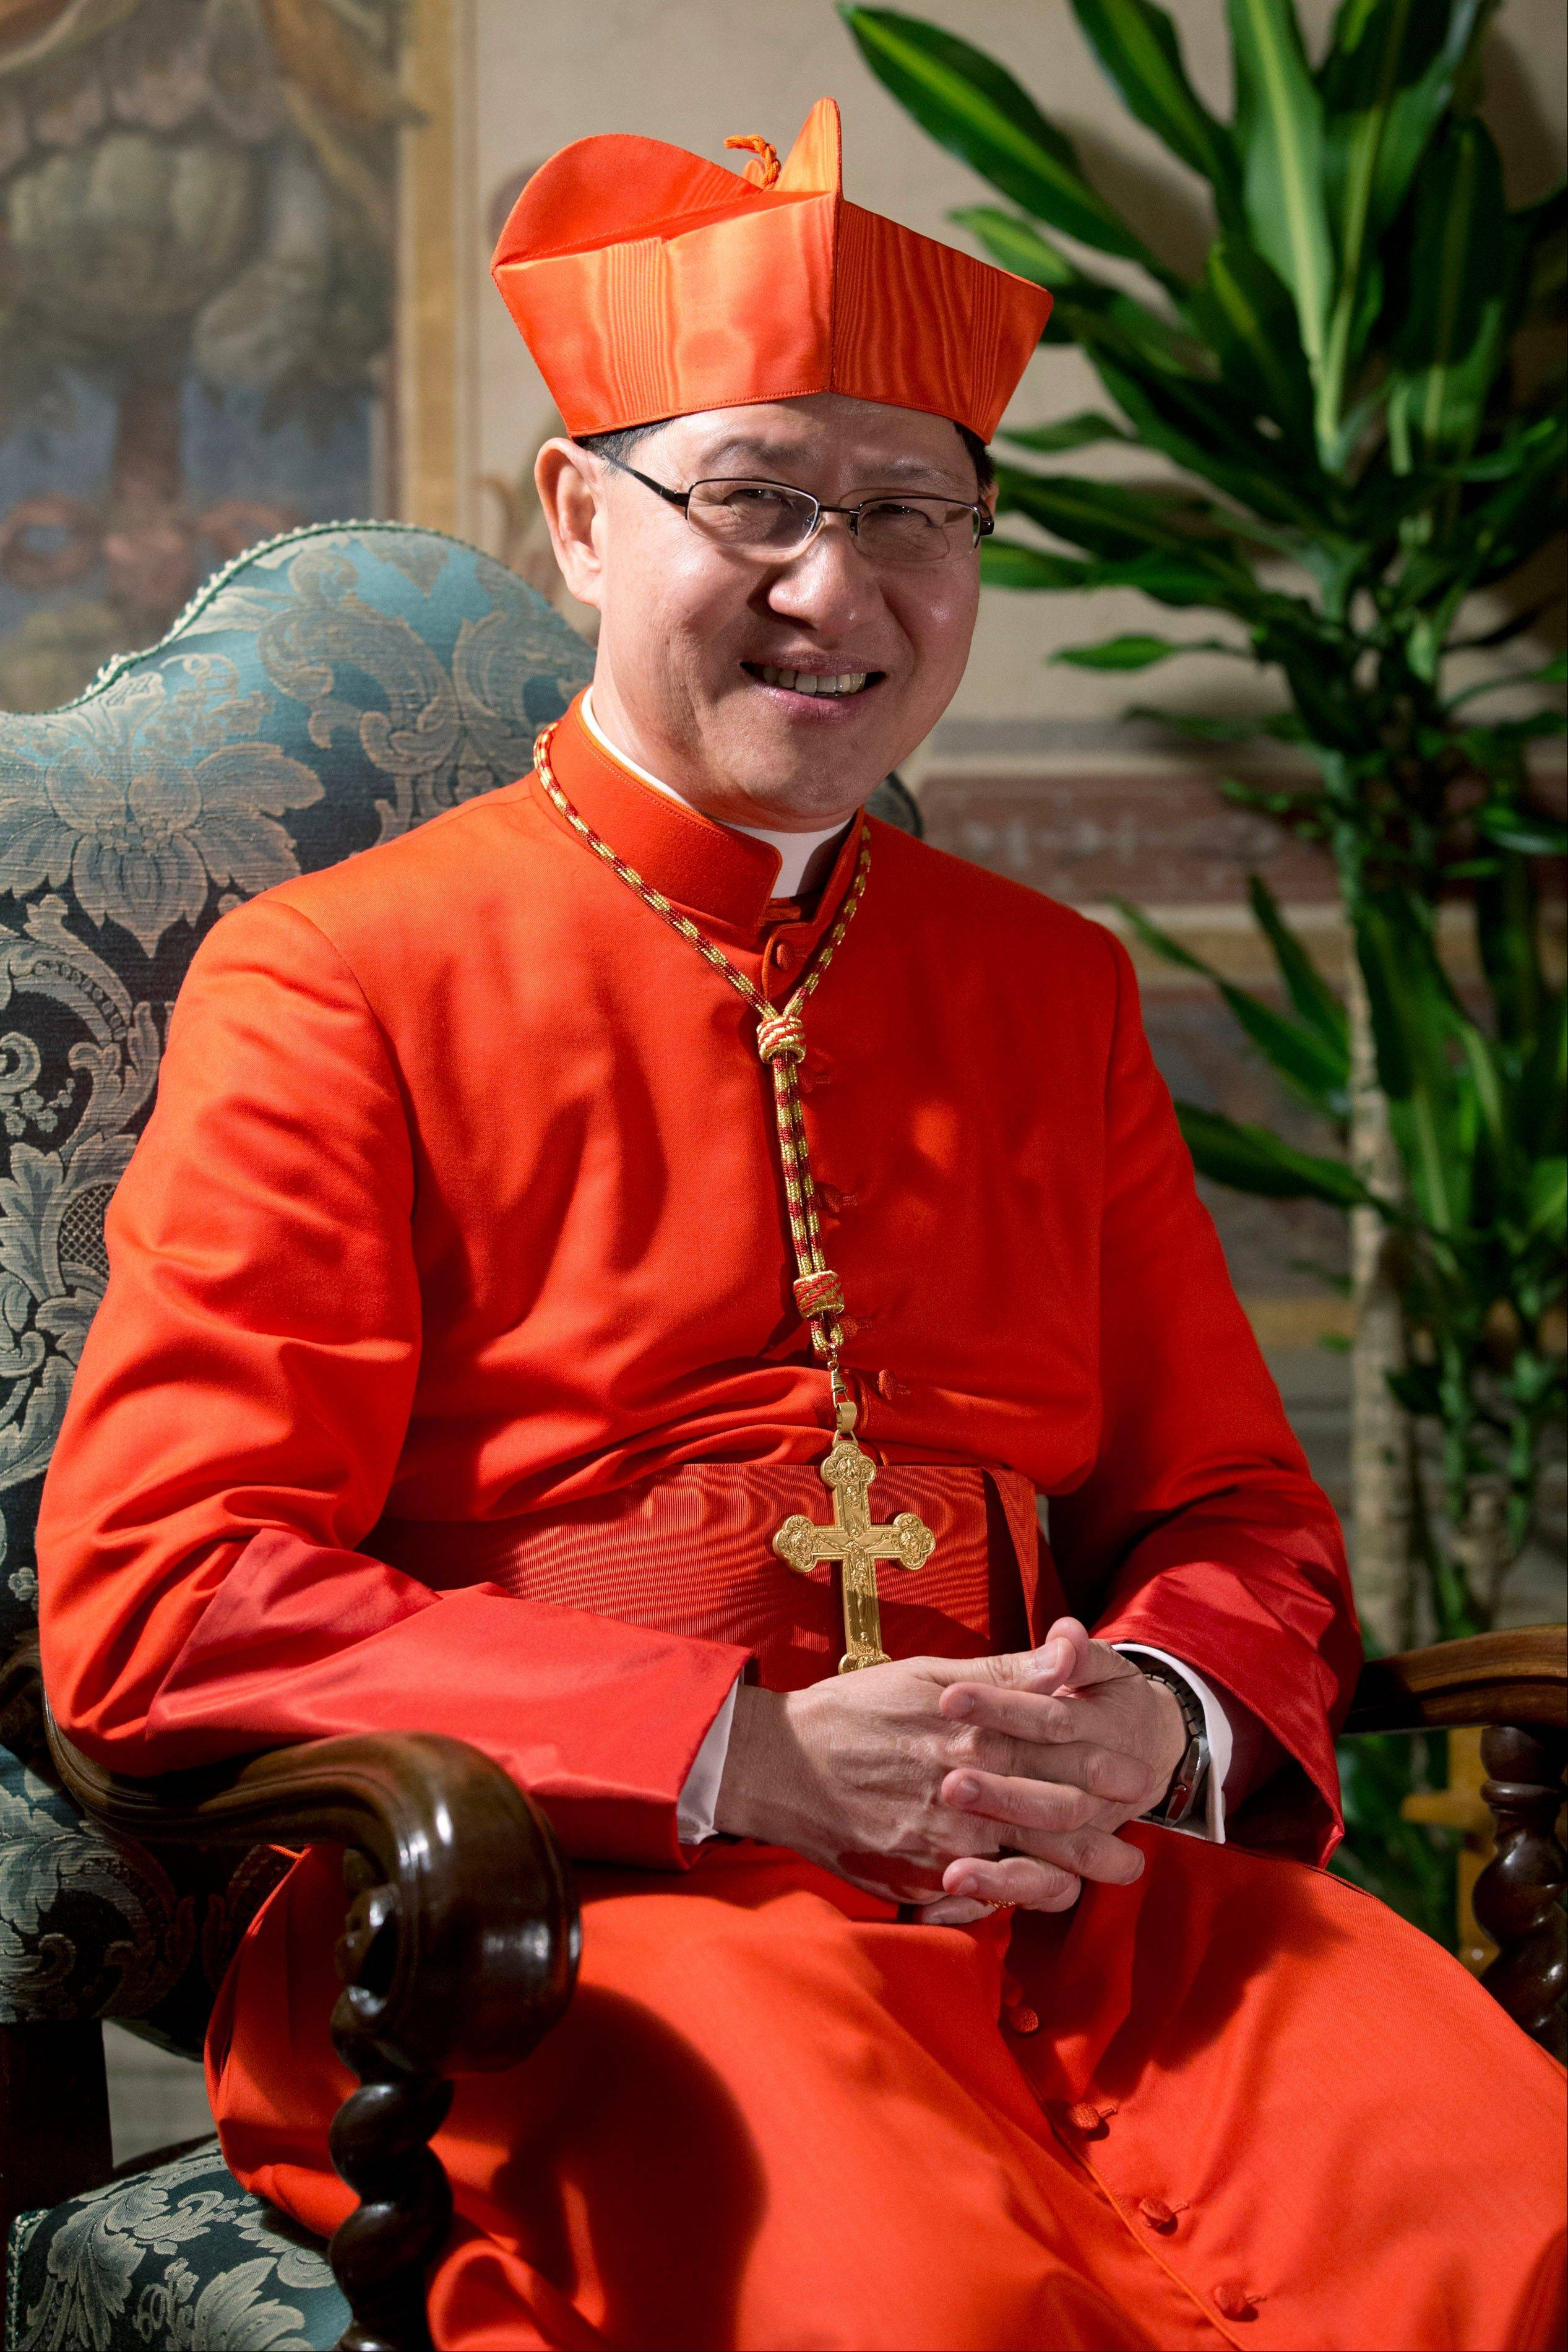 Philippine Cardinal Luis Antonio Tagle's best response against the tide of secularism, clergy sex abuse scandals and rival-faith competition could be his reputation for humility. His compassion for the poor and unassuming ways have impressed followers in his homeland, Asia's largest Catholic nation, and church leaders in the Vatican.